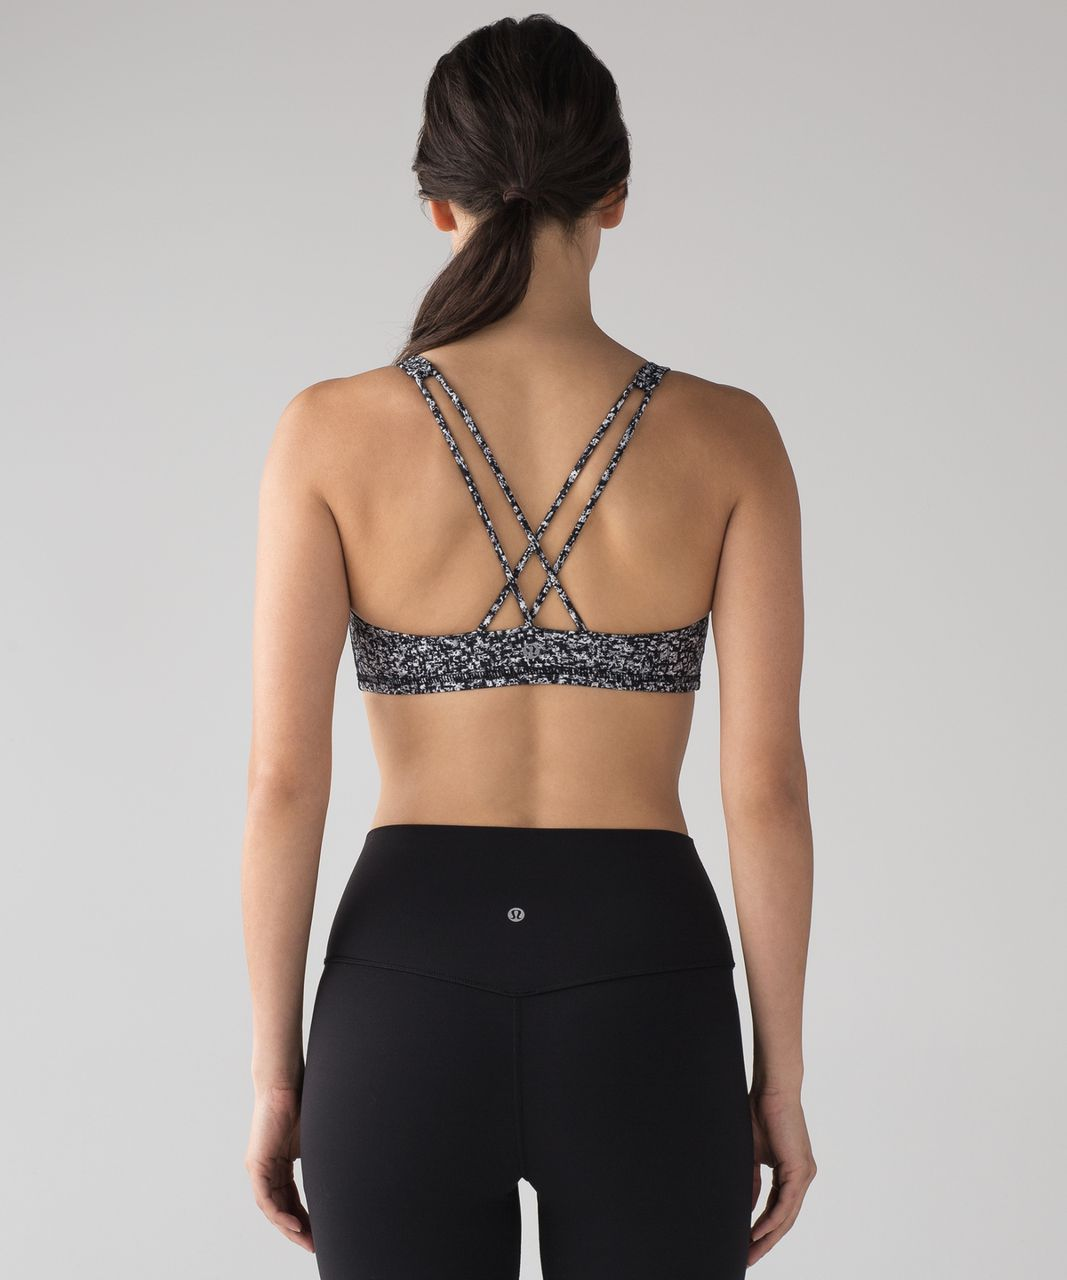 Lululemon Free To Be Bra - Daisy Dust Alpine White Black